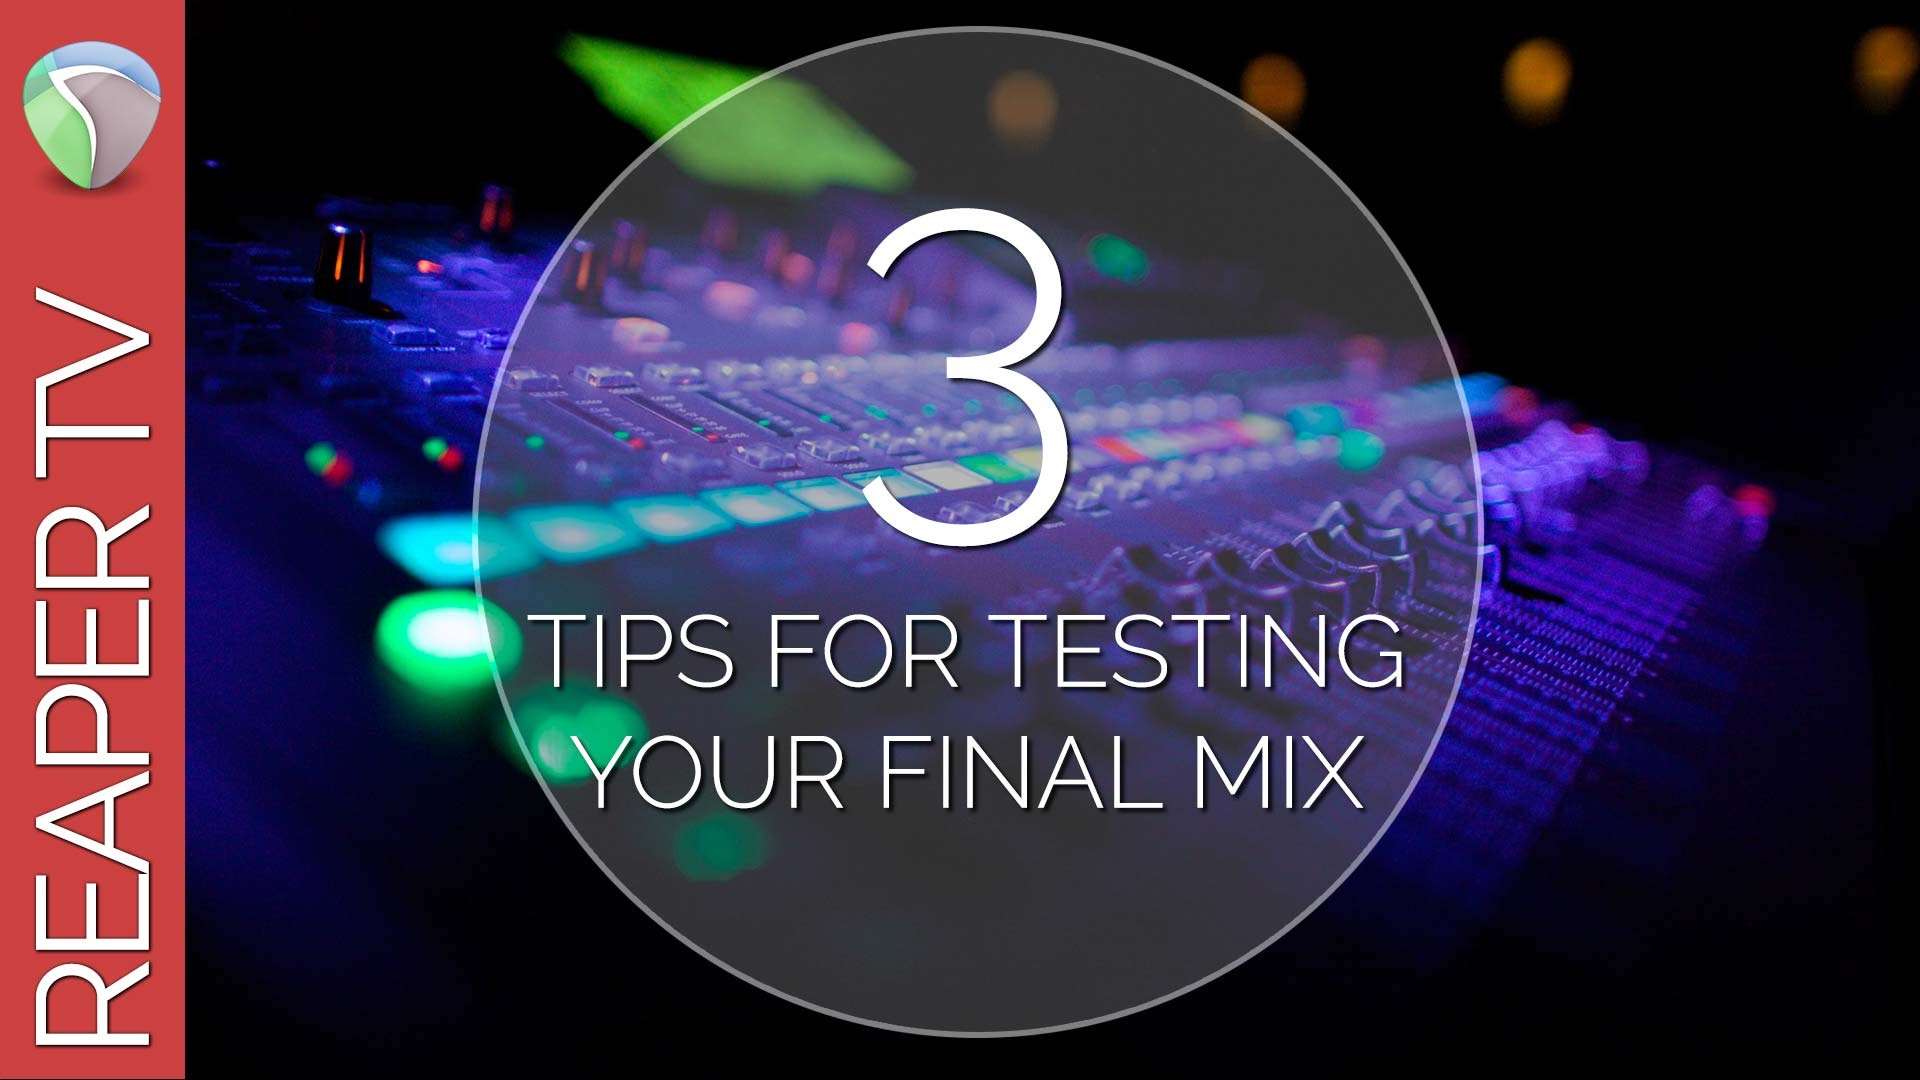 Music Mixing Tips: 3 Tips for a Great Final Mix